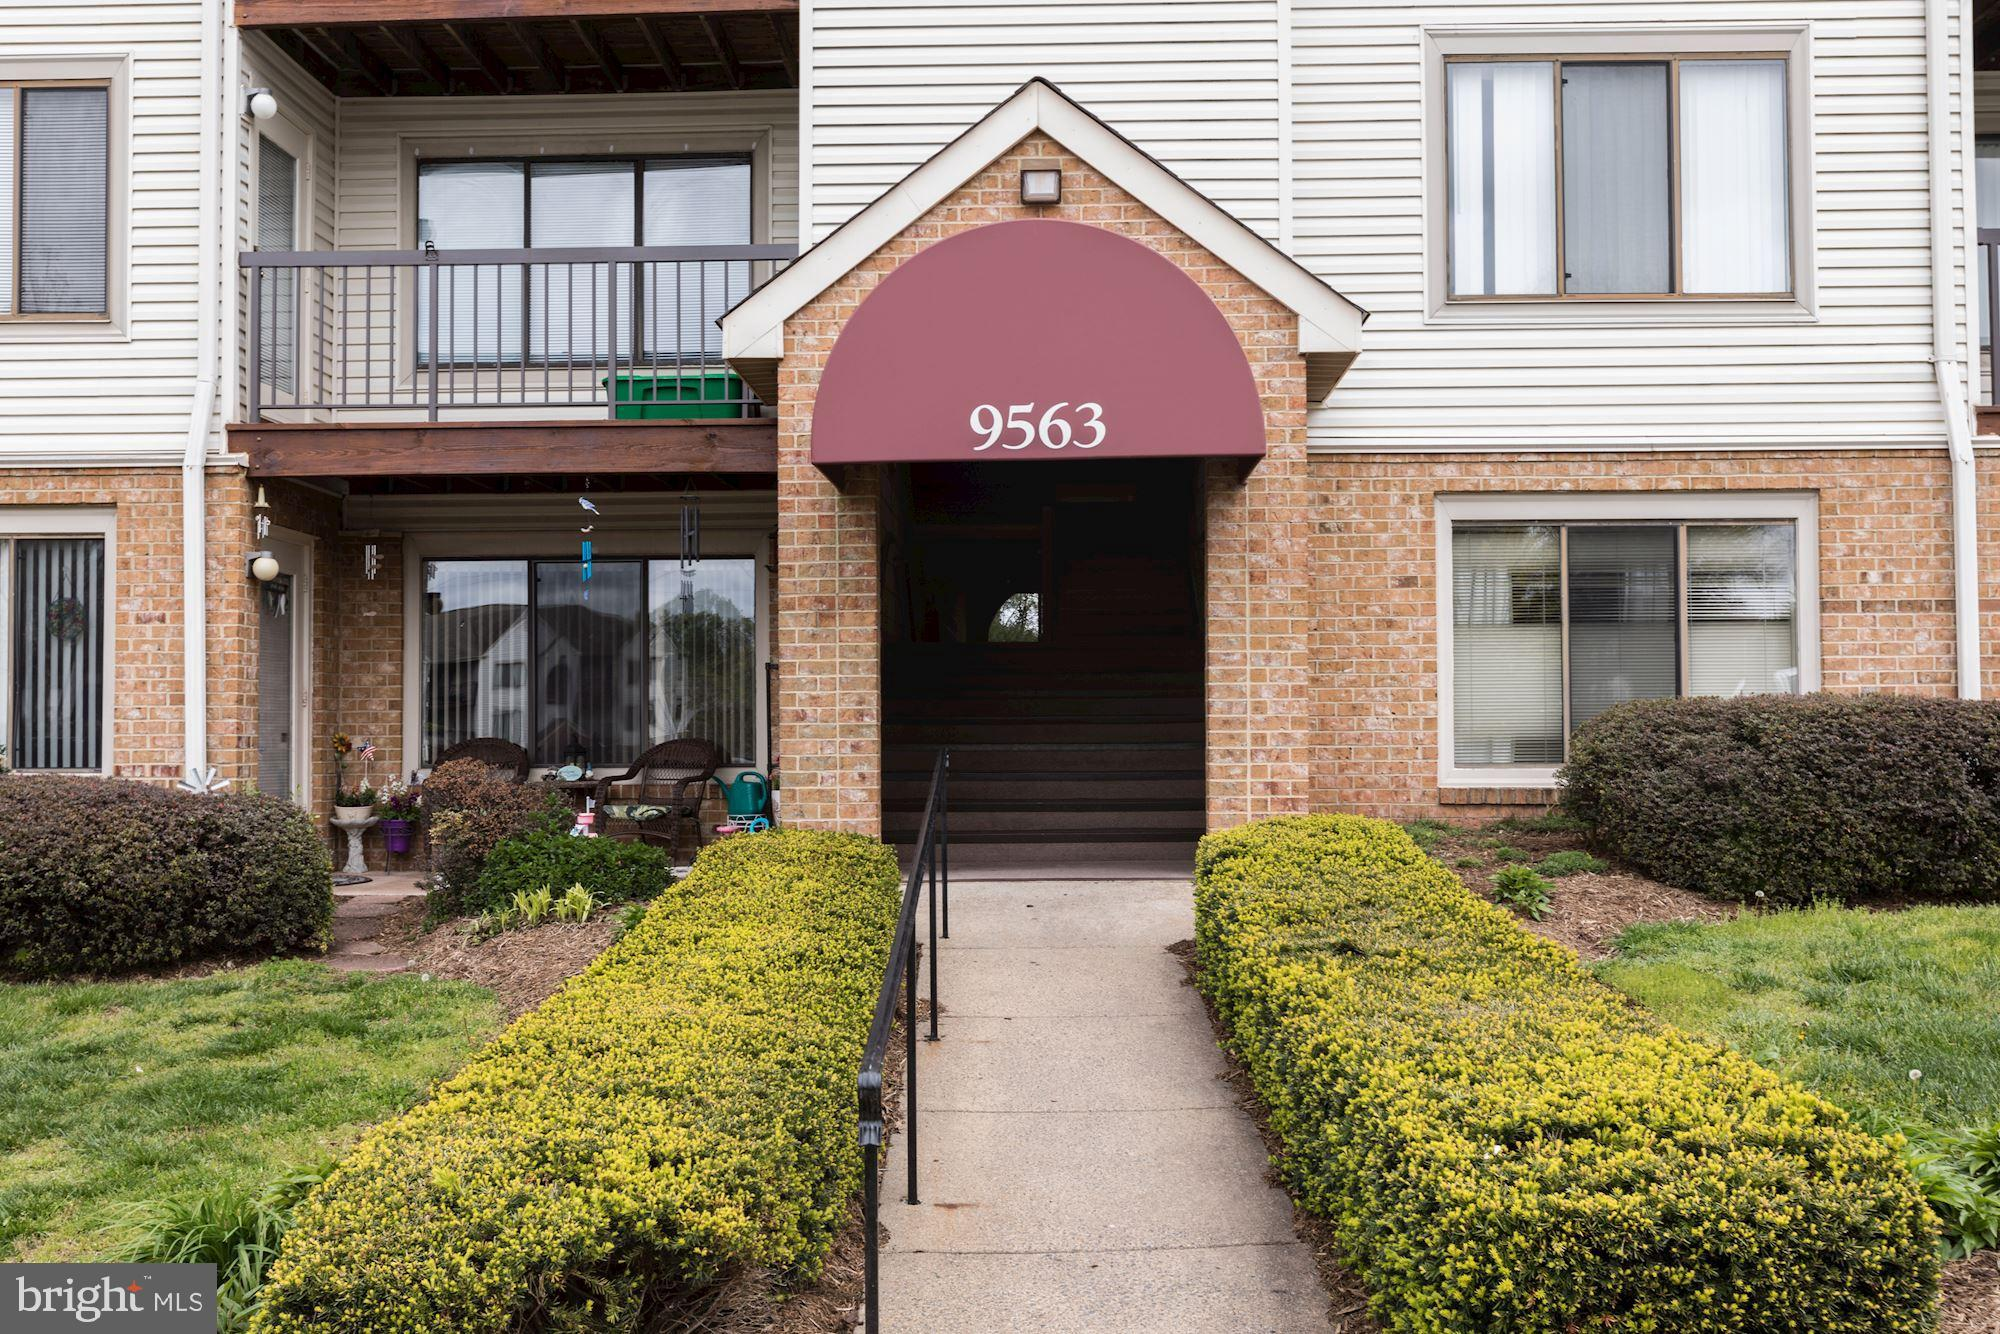 Spacious condo in a great location close to shopping, schools, Old Town Manassas, VRE, Route 28, and Prince William Parkway.  Move in ready, 2 bedrooms with 2 full baths and walk-in closets.   Open living/dining room, and eat-in kitchen that opens up to a balcony with wooded views.  Laundry room with washer and dryer.